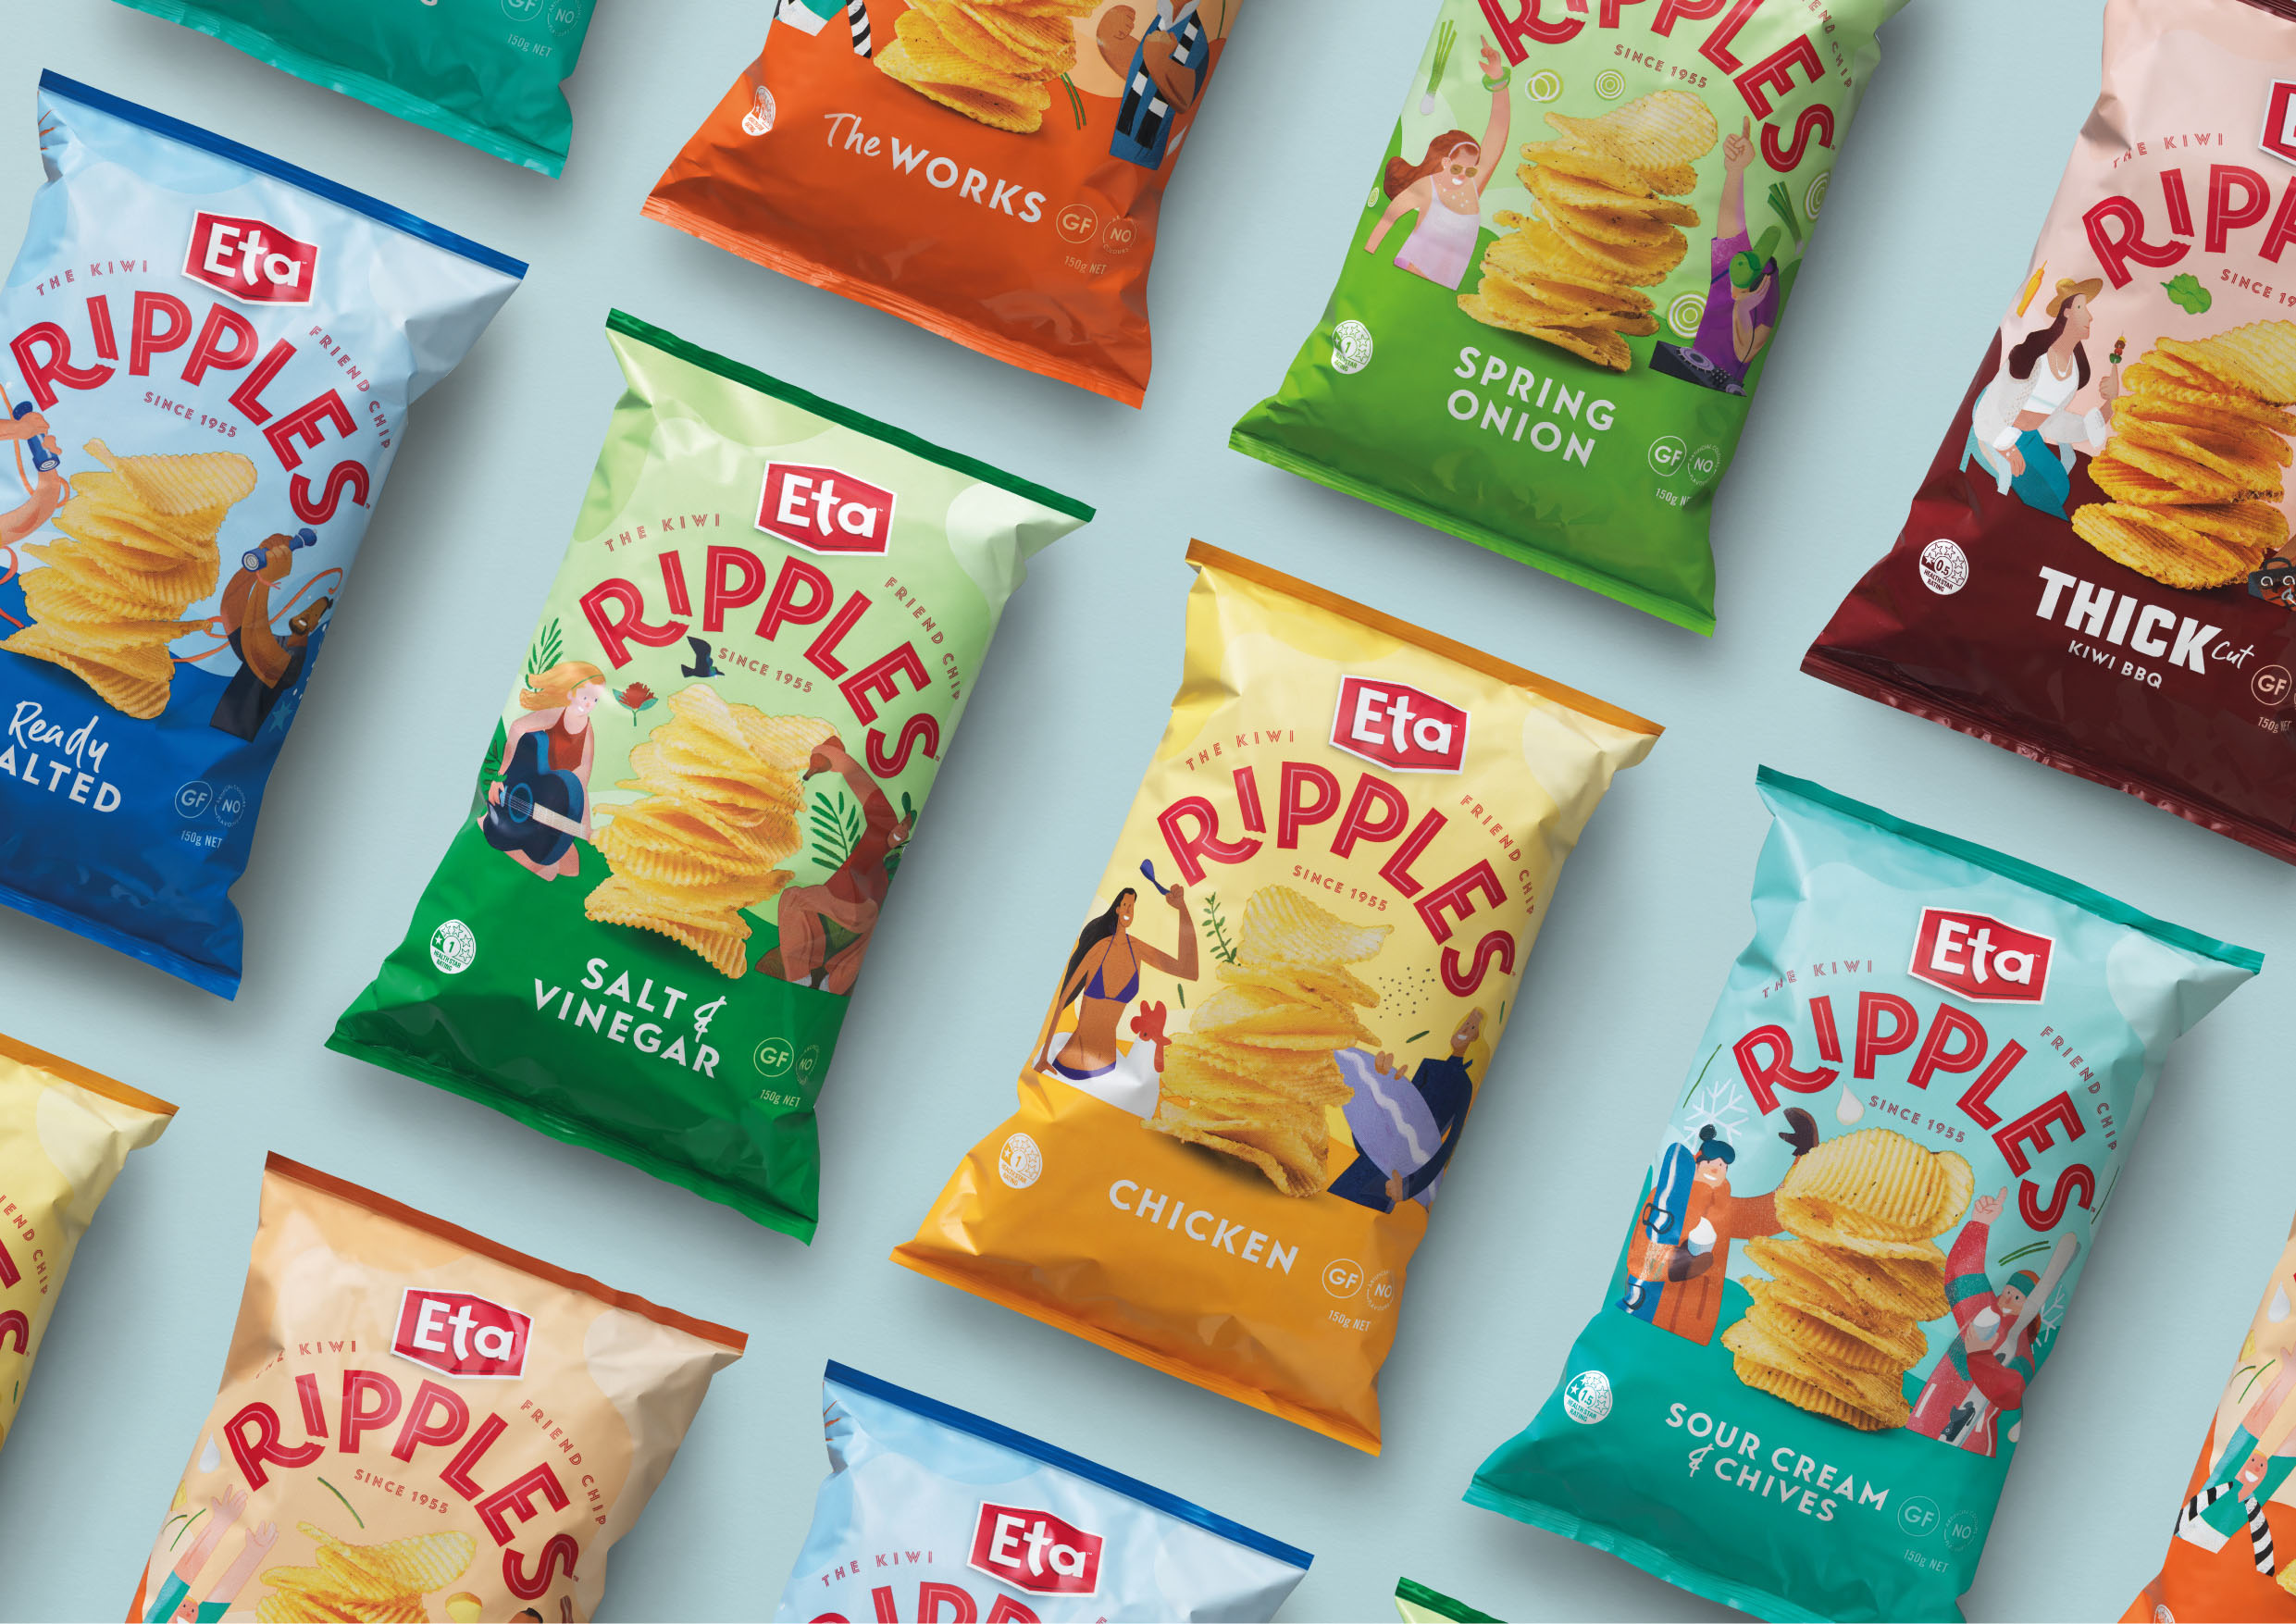 Eta Ripples Become Unforgettable With a Packaging Design Makeover